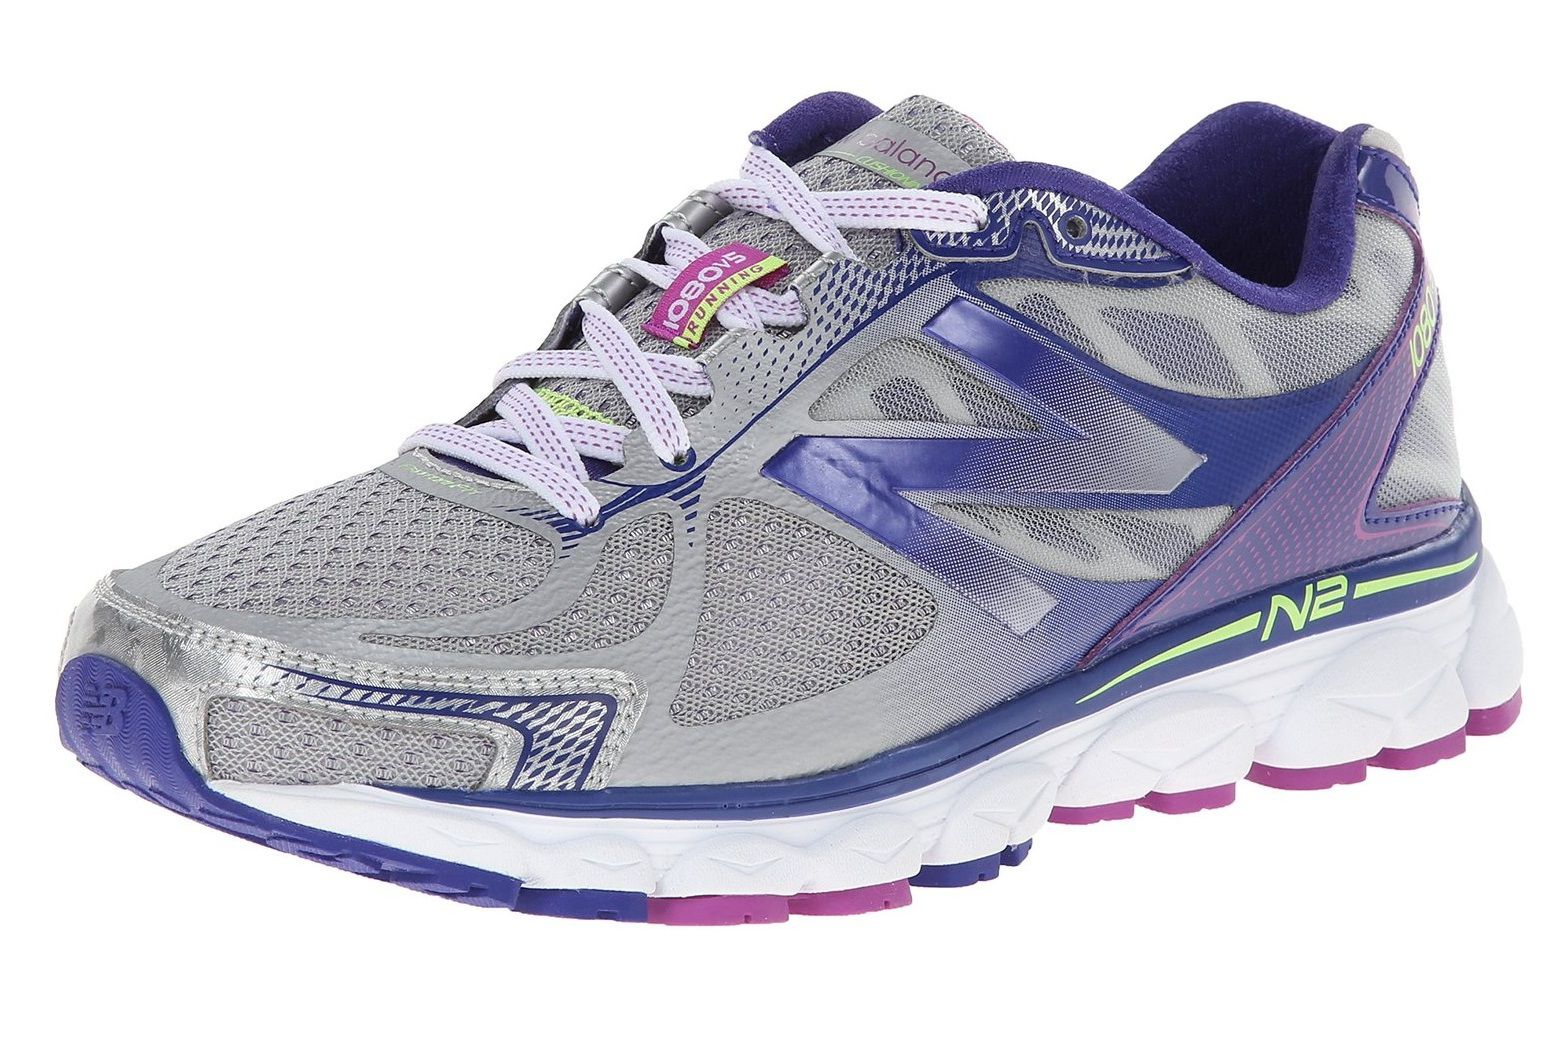 new balance extra wide toddler shoes. new balance extra wide toddler shoes 7